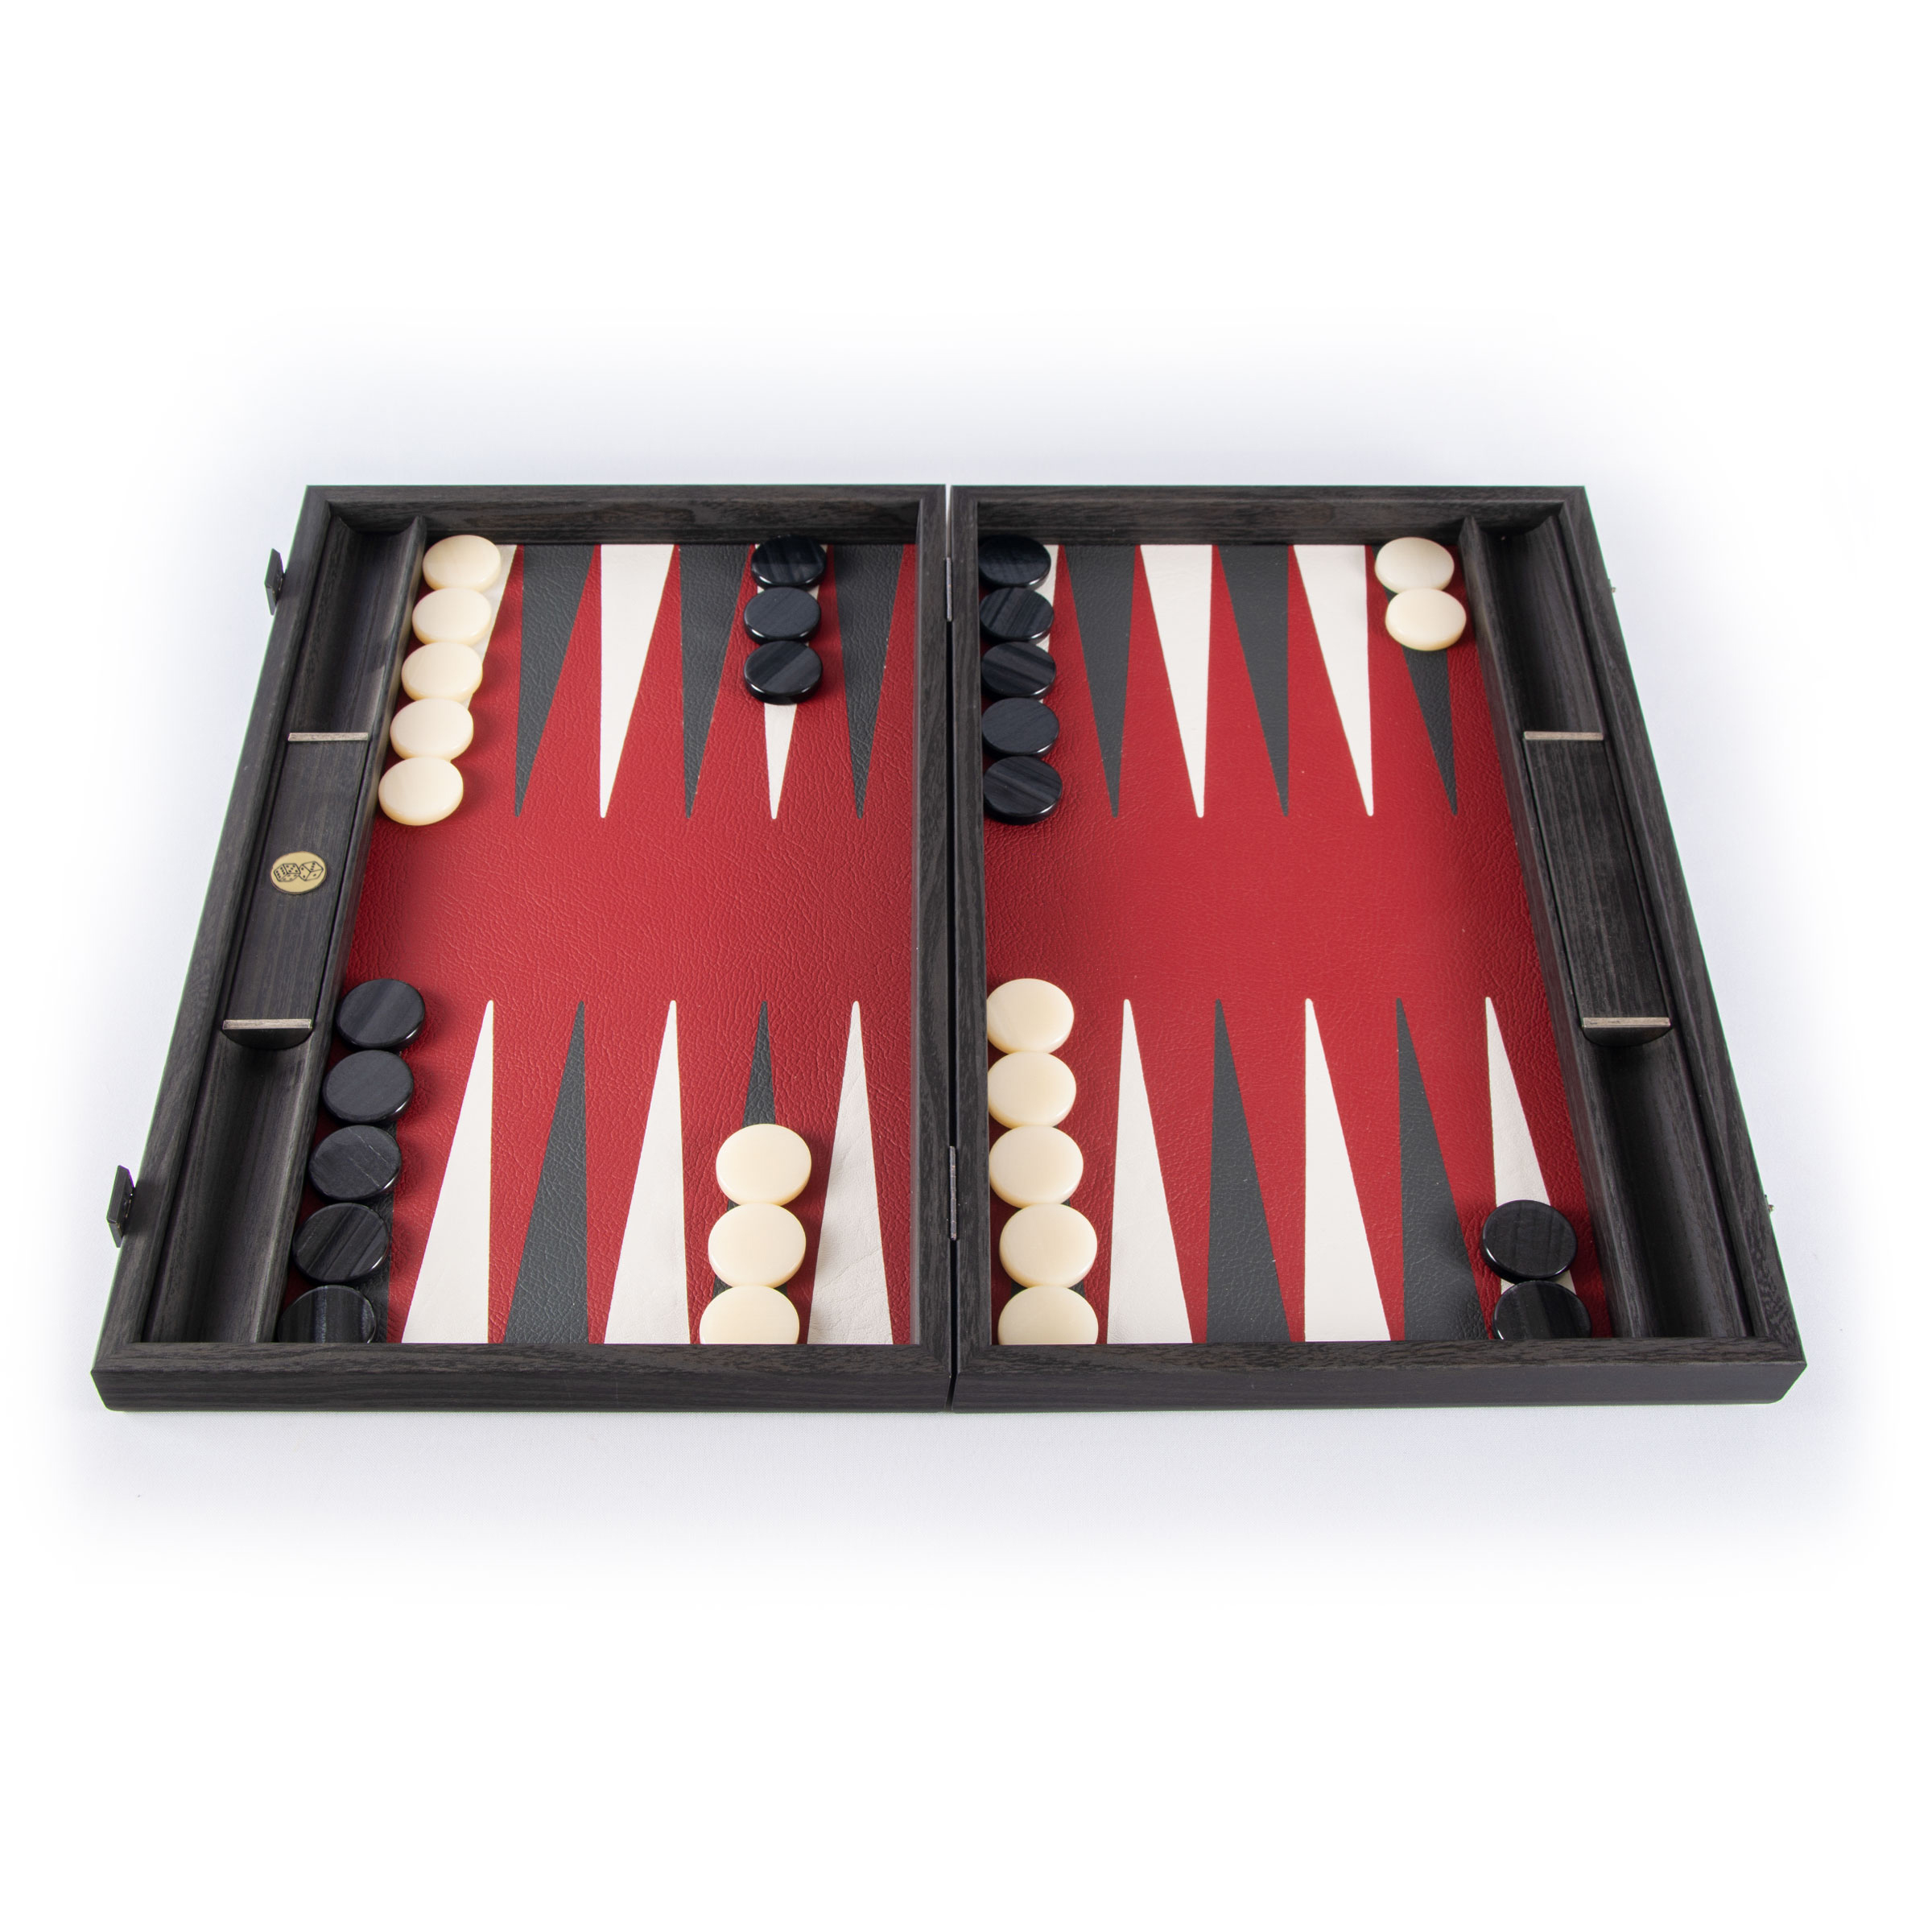 black and red backgammon set 19 inches with leatherette playing field